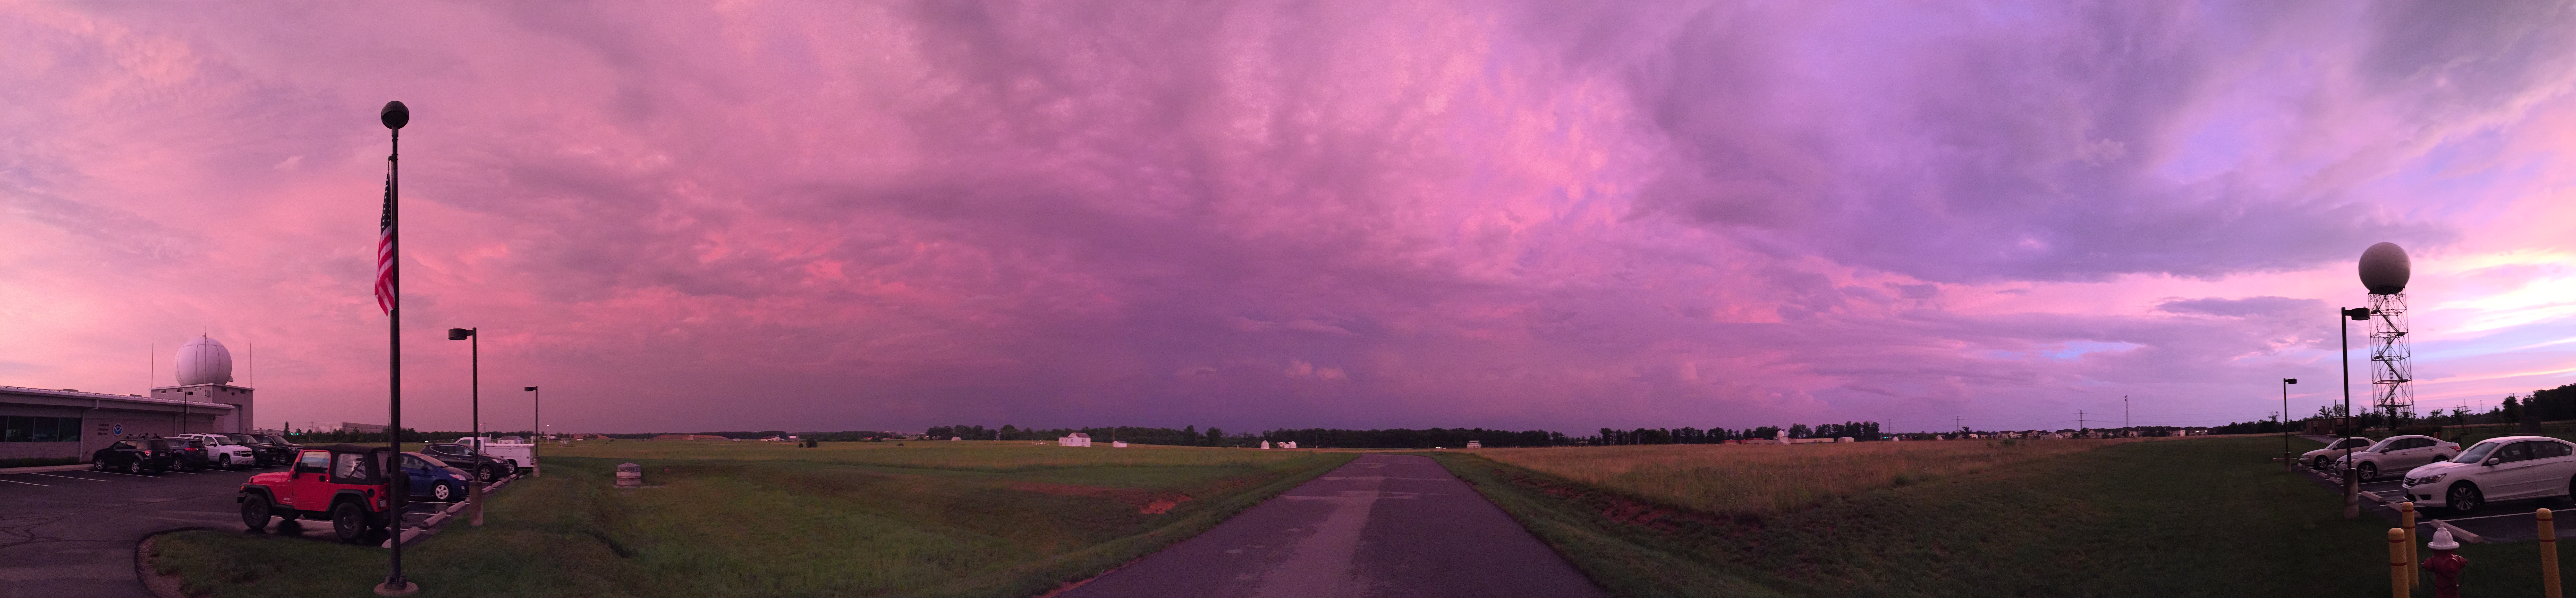 File 2015 06 23 20 49 43 Pink And Purple Clouds Near Sunset An American Flag A Wsr 88d Doppler Radar And A Nws Upper Air Station At The National Weather